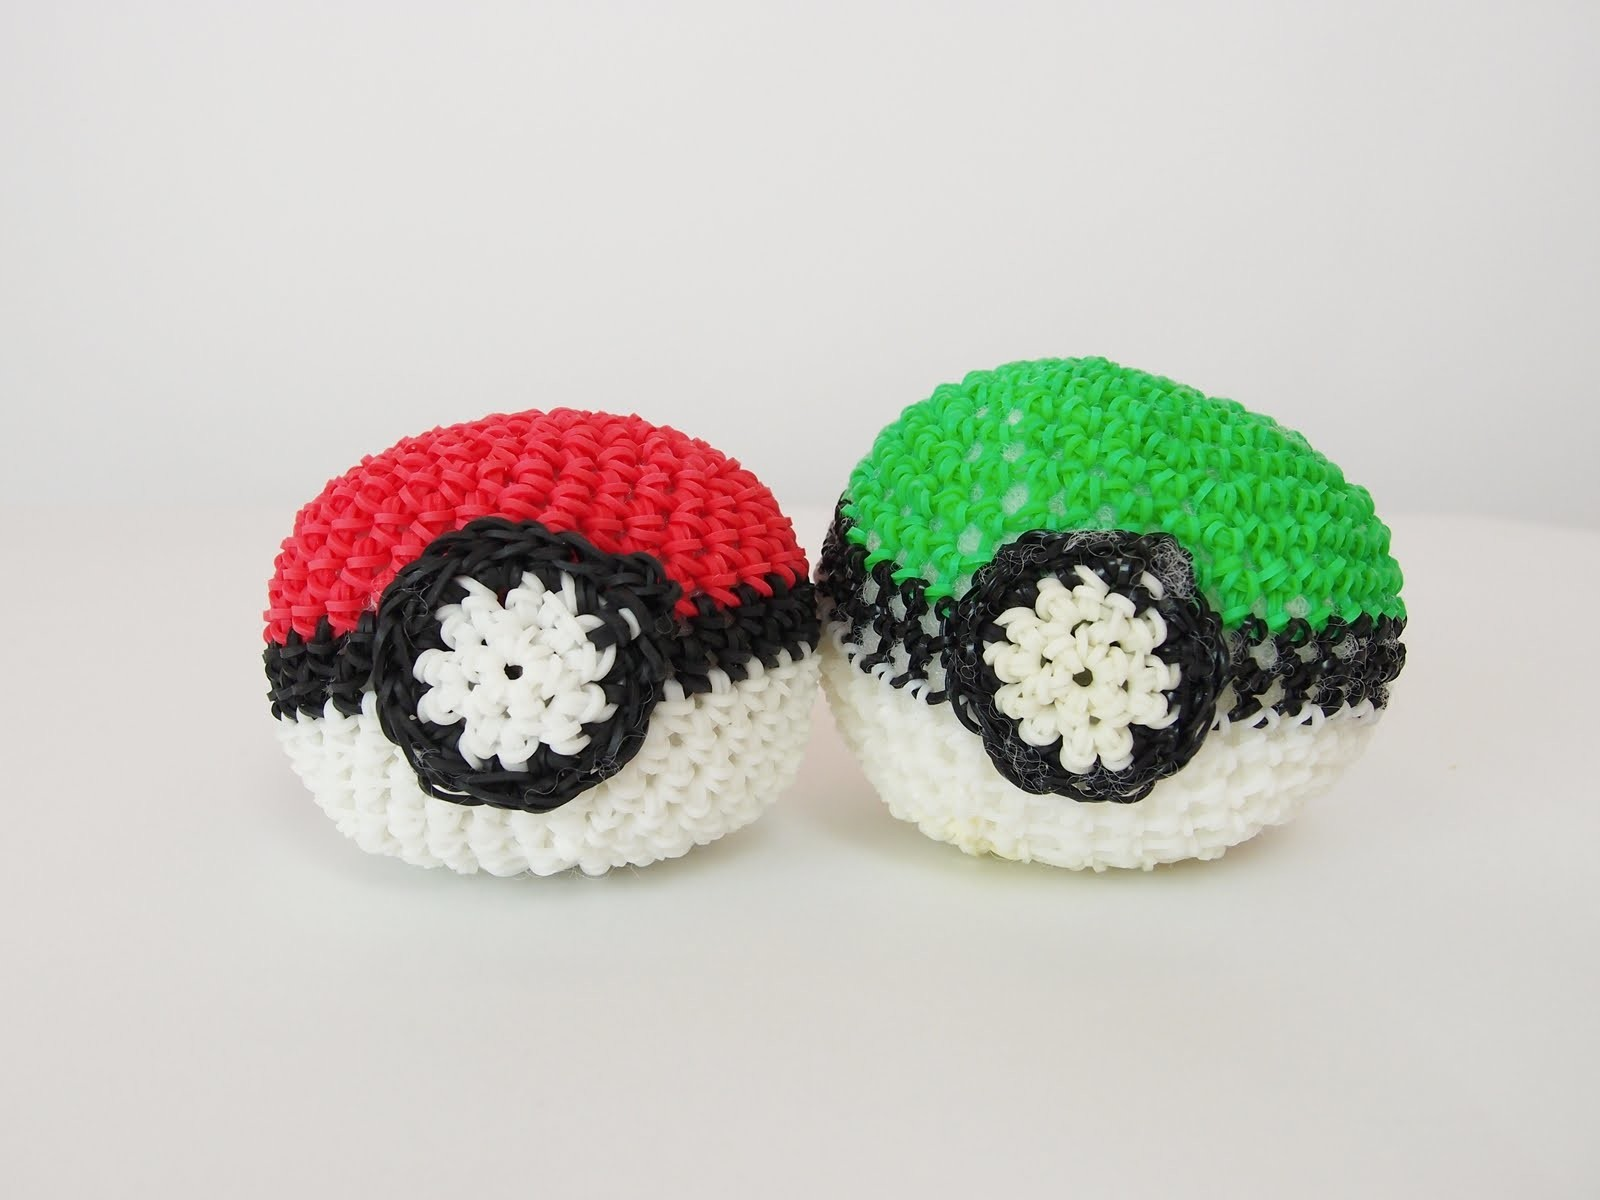 Pokémon Poké Ball Rainbow Loom Bands Amigurumi Loomigurumi Hook Only Tutorial